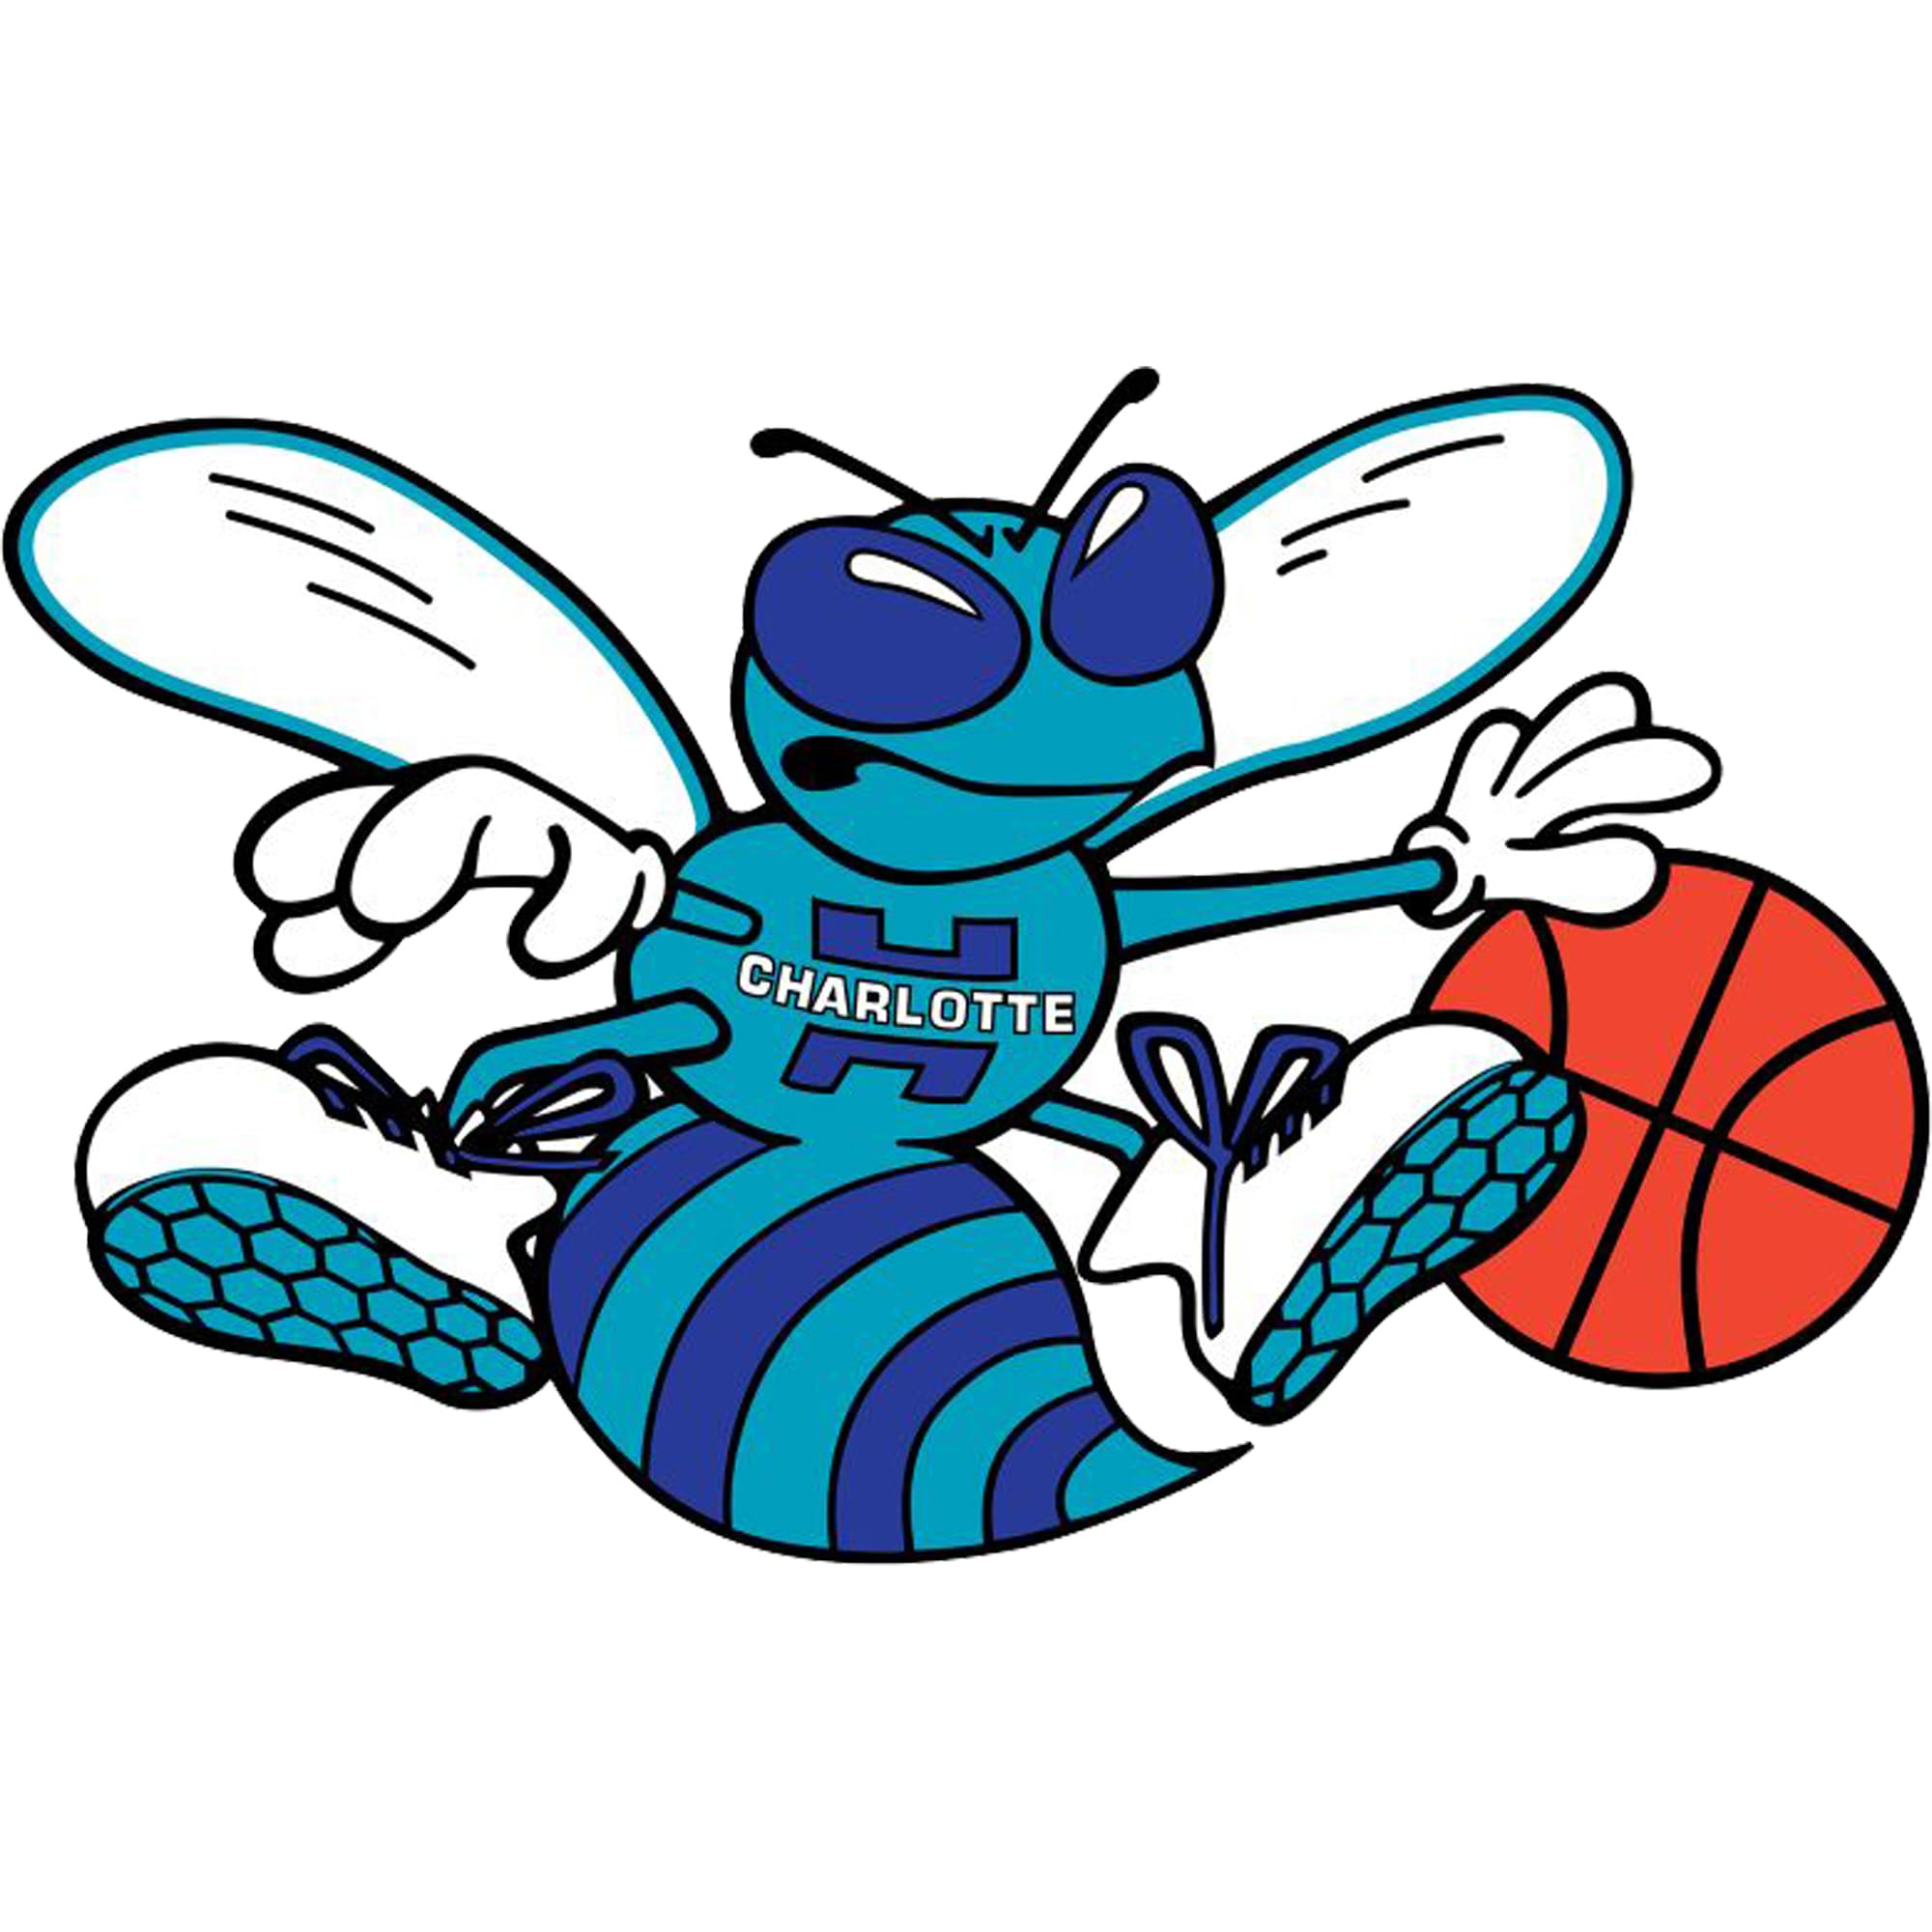 Charlotte Hornets Fathead Giant Removable Decal